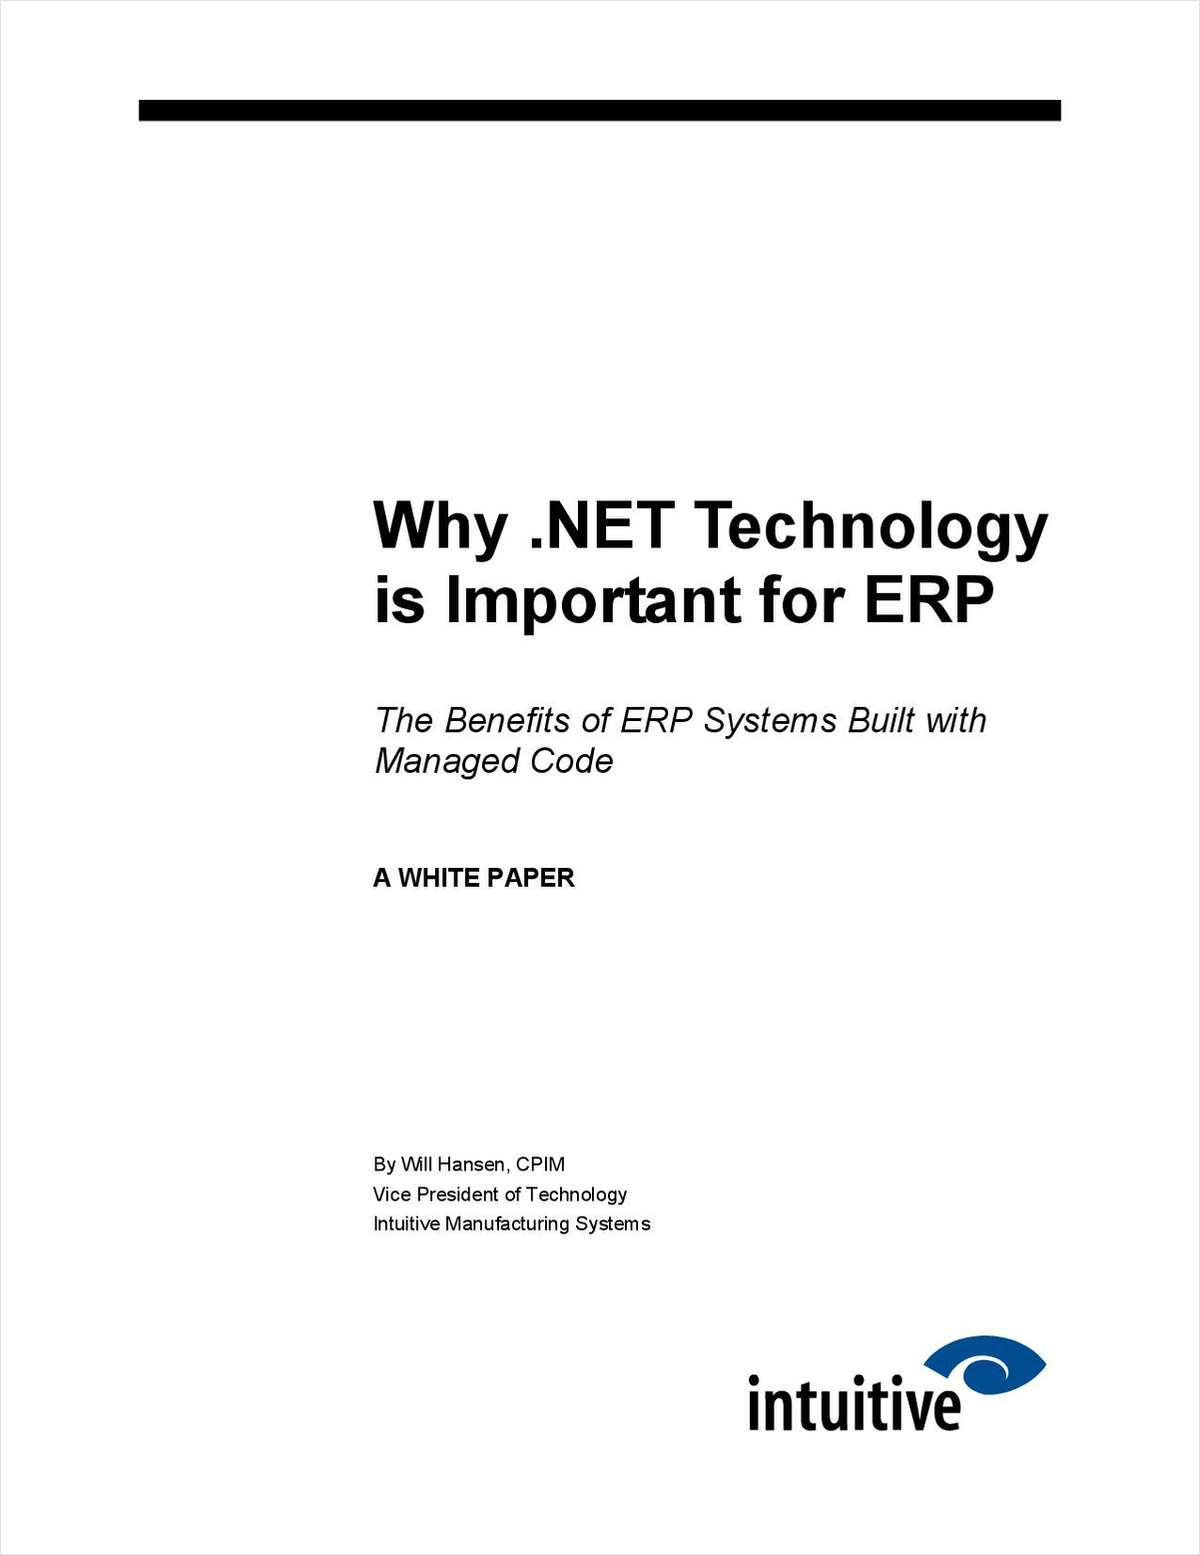 Why .NET Technology is important for ERP